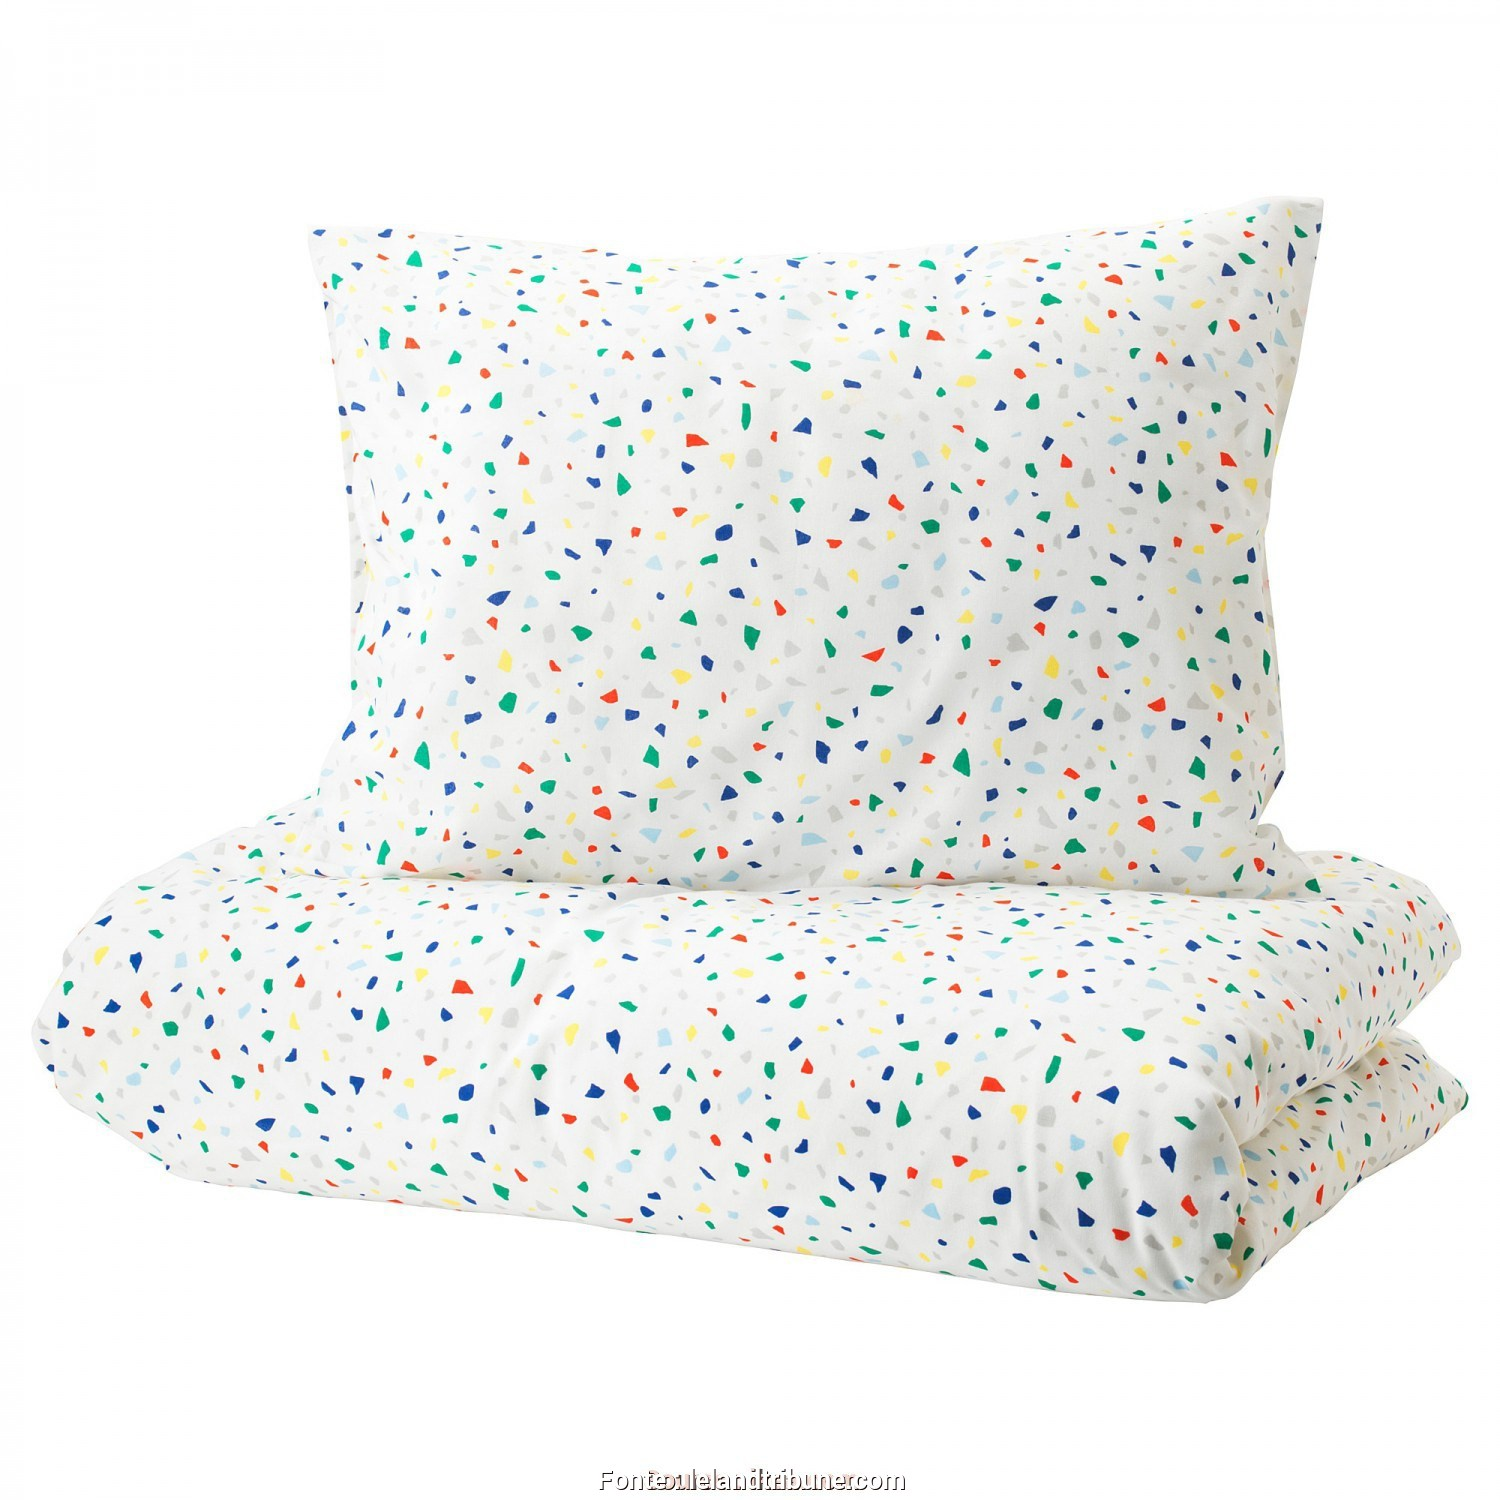 Ikea, Stoffe, Casuale Stoffe 24